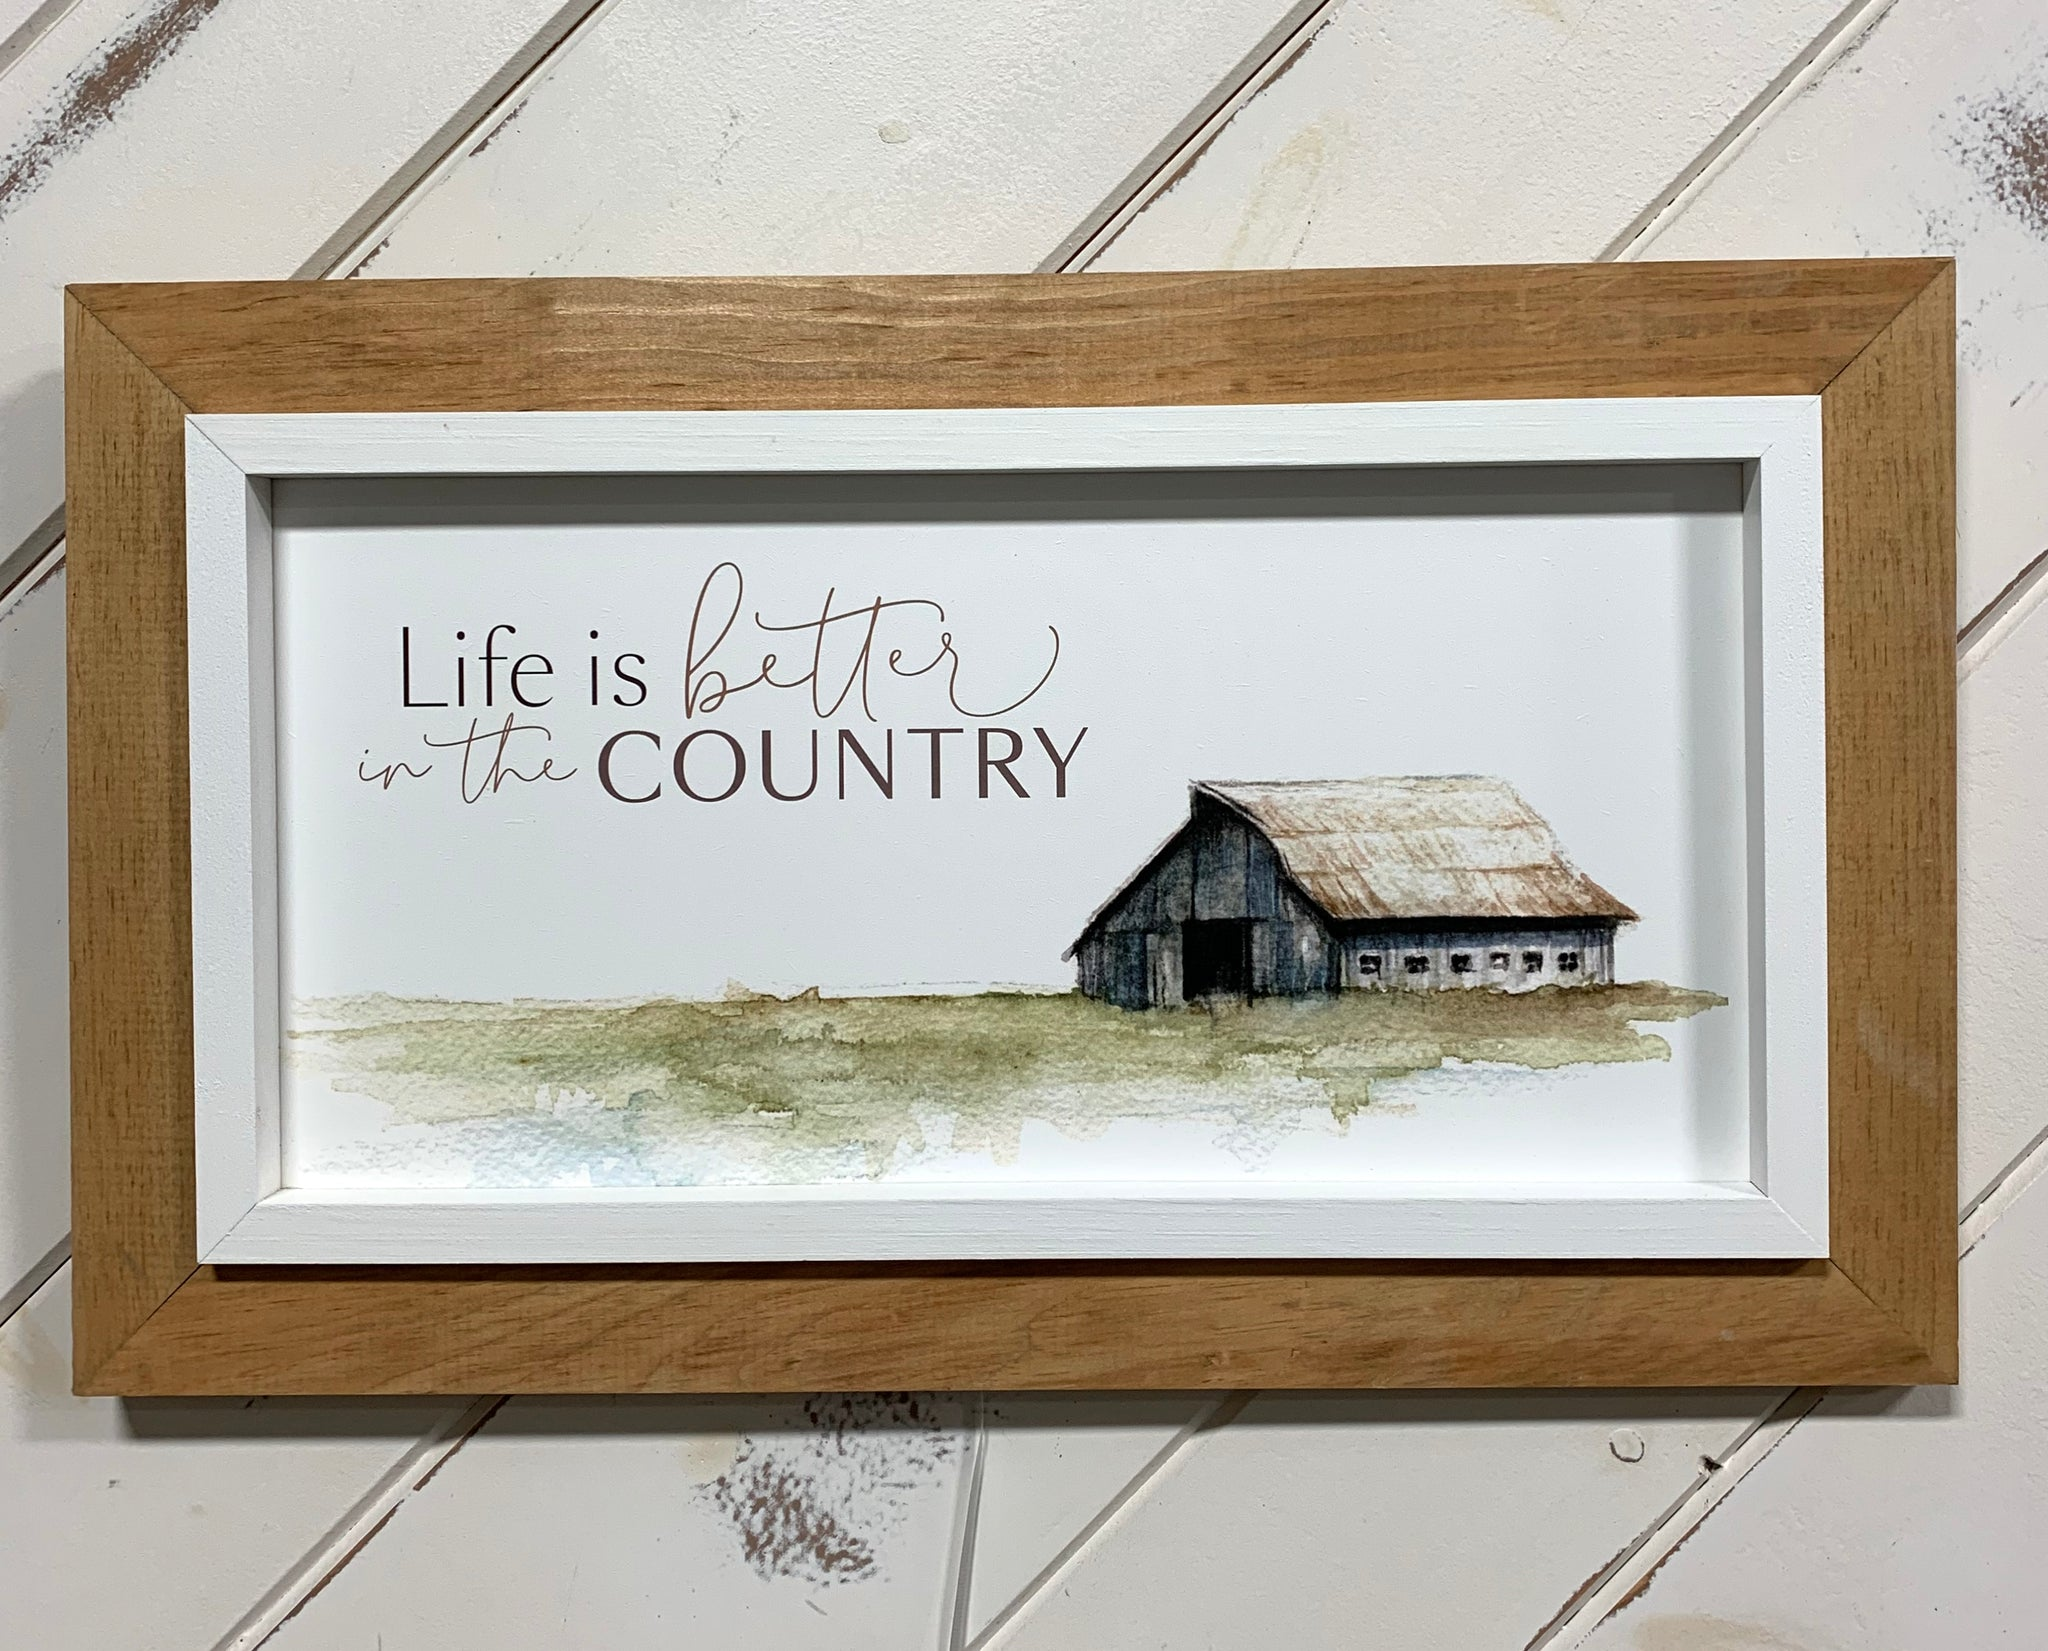 Life Is Better In The Country (4417110638675)